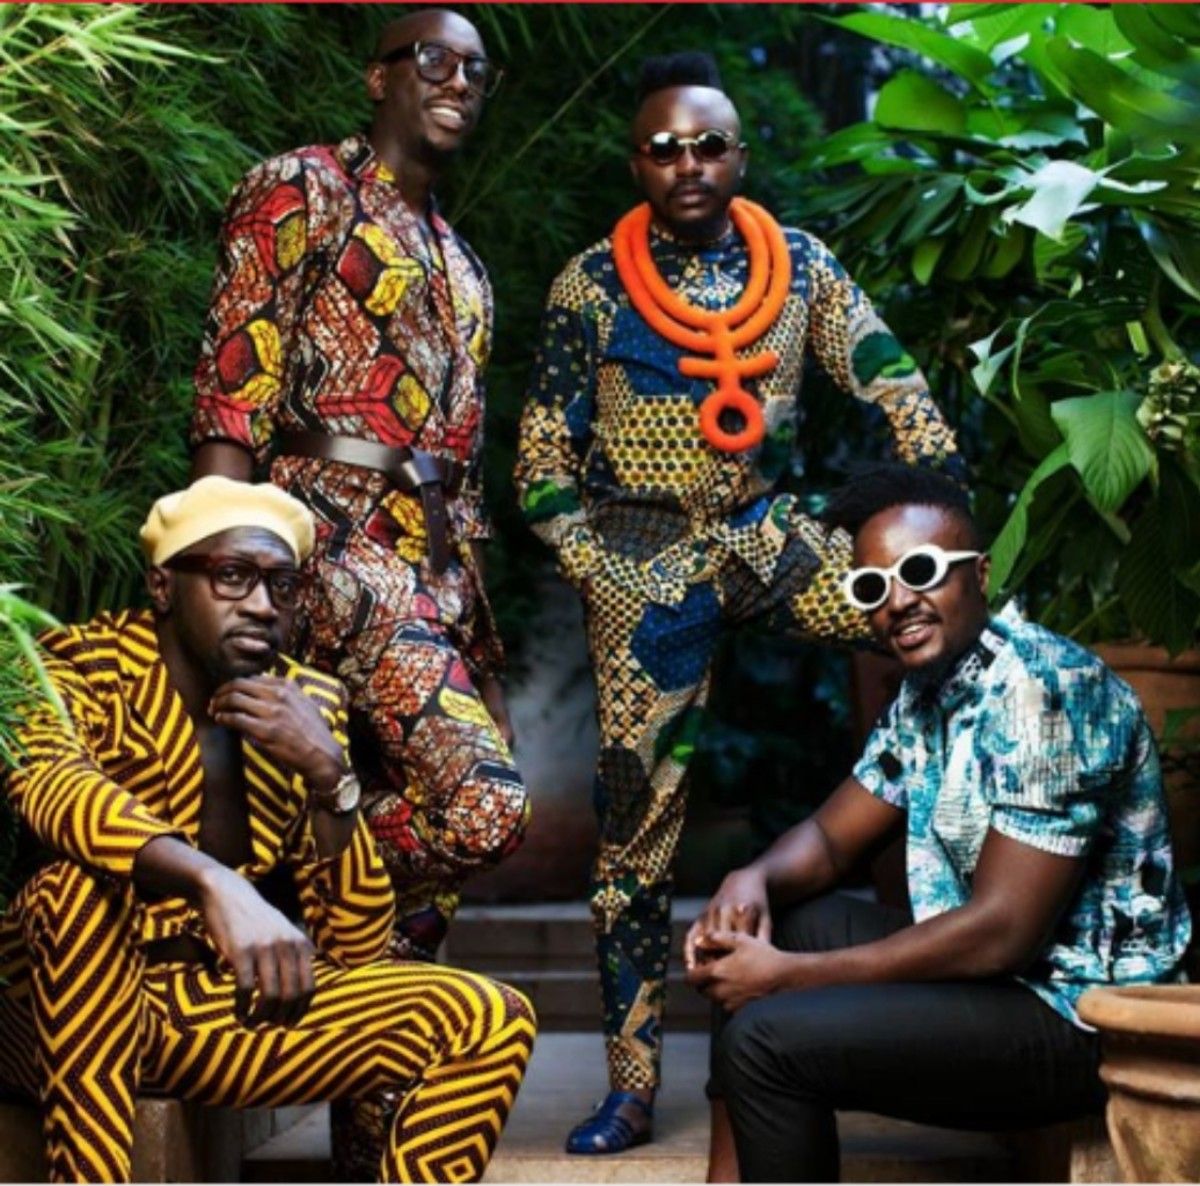 Sauti Sol–The Most Successful Male Band in Kenya